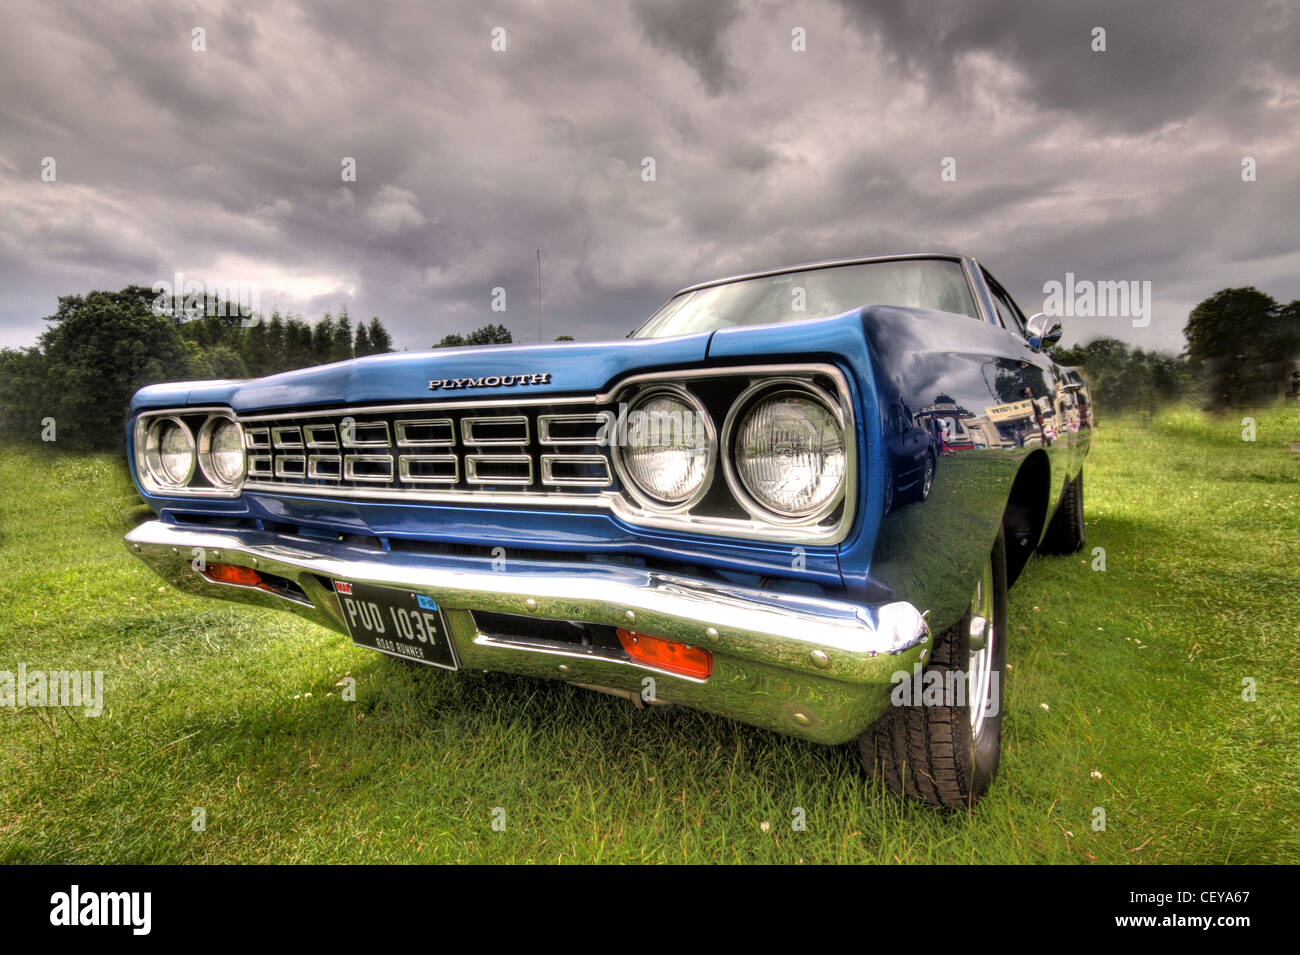 Blue Plymouth American Classic PUD 103F PUD103F car Automobile - Stock Image